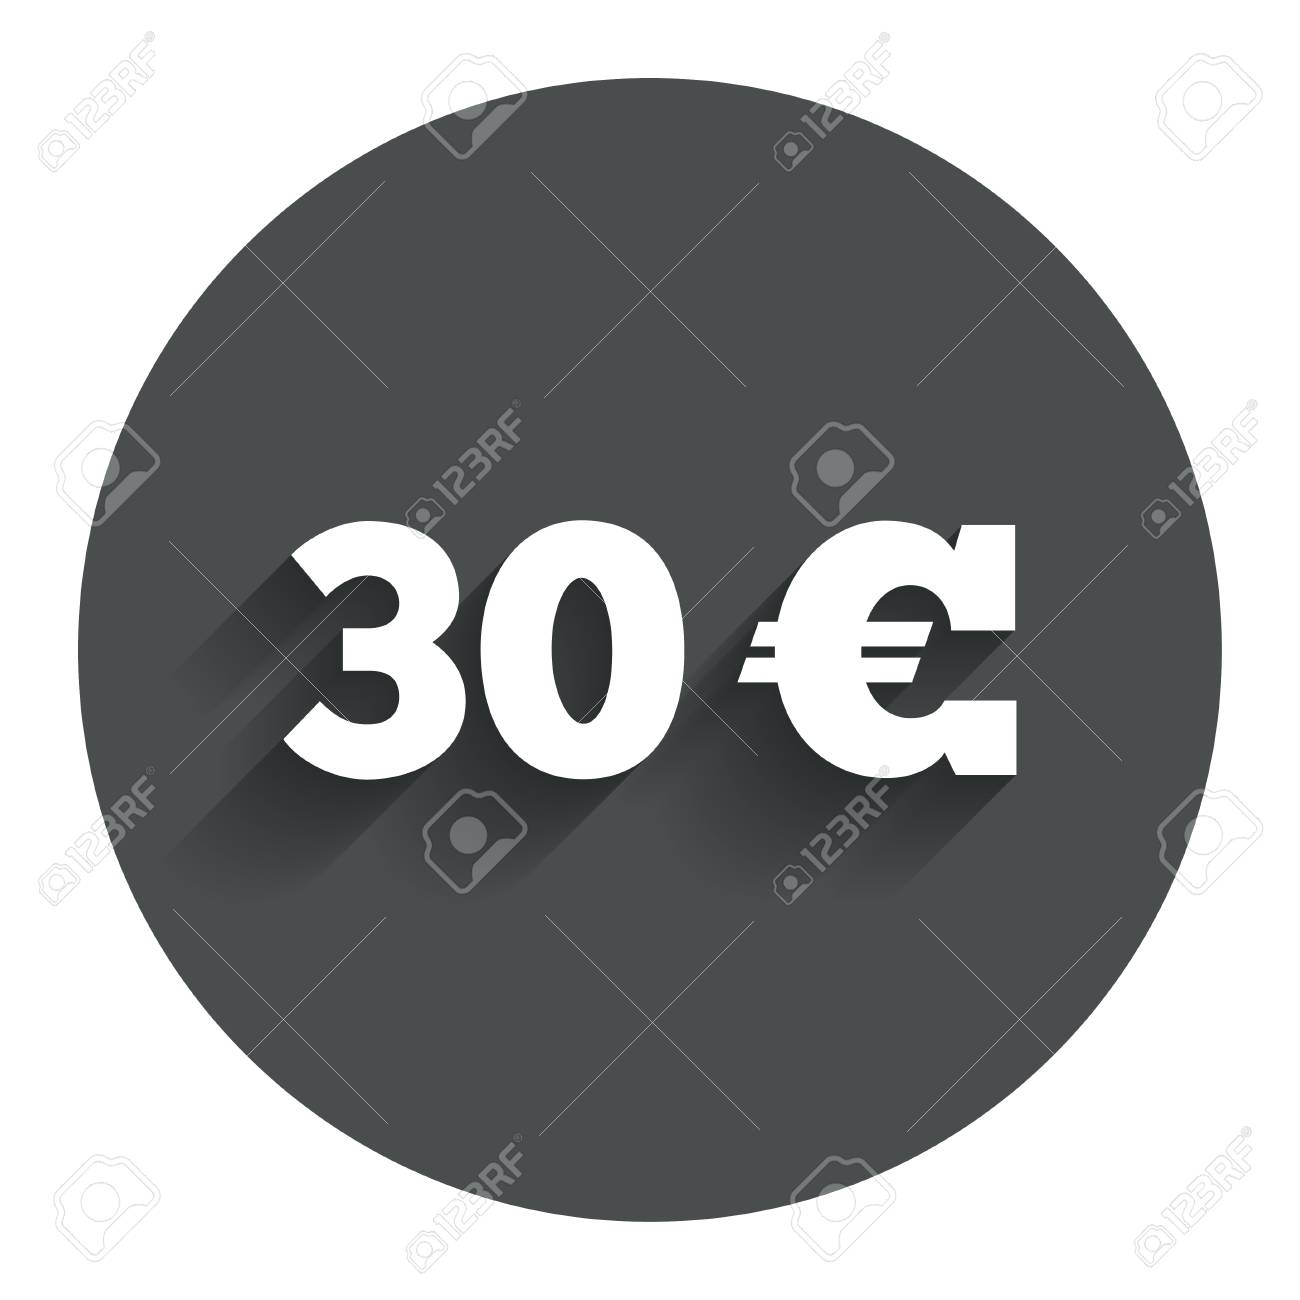 30 euro sign icon eur currency symbol money label circle flat 30 euro sign icon eur currency symbol money label circle flat button with buycottarizona Gallery